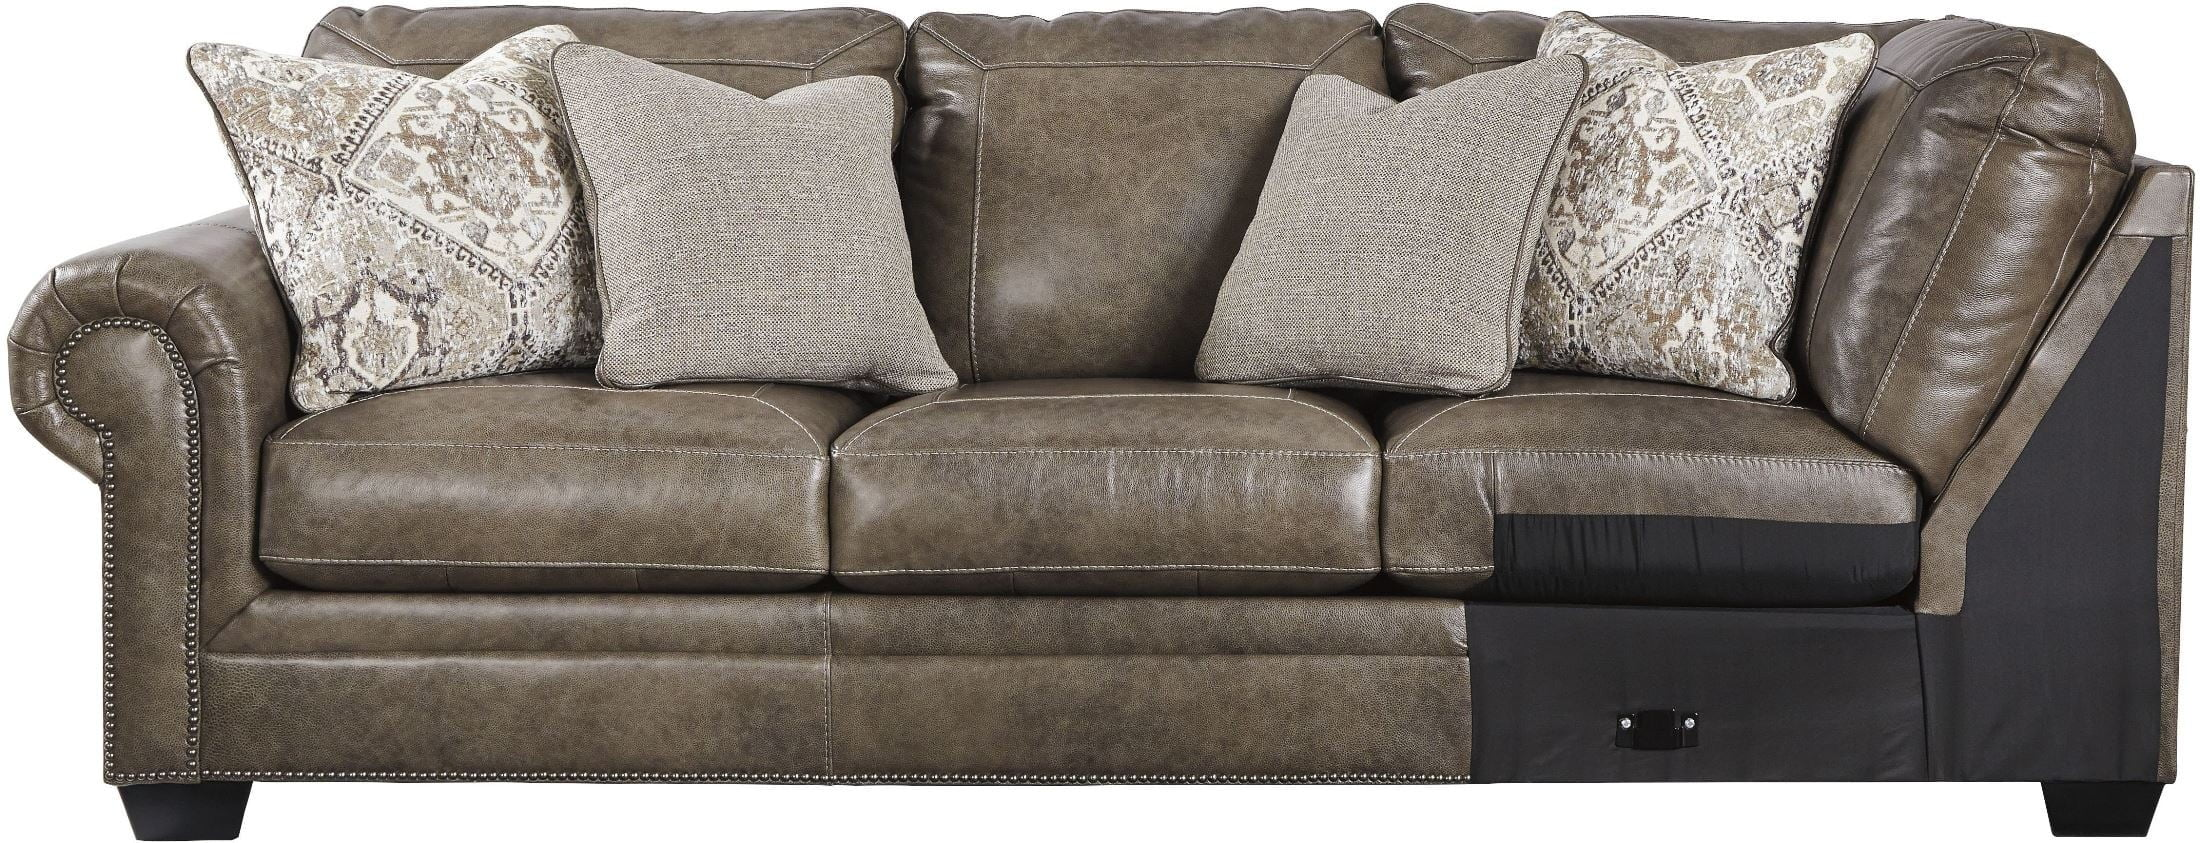 Pleasing Roleson Quarry Raf Sectional From Ashley Coleman Furniture Pdpeps Interior Chair Design Pdpepsorg